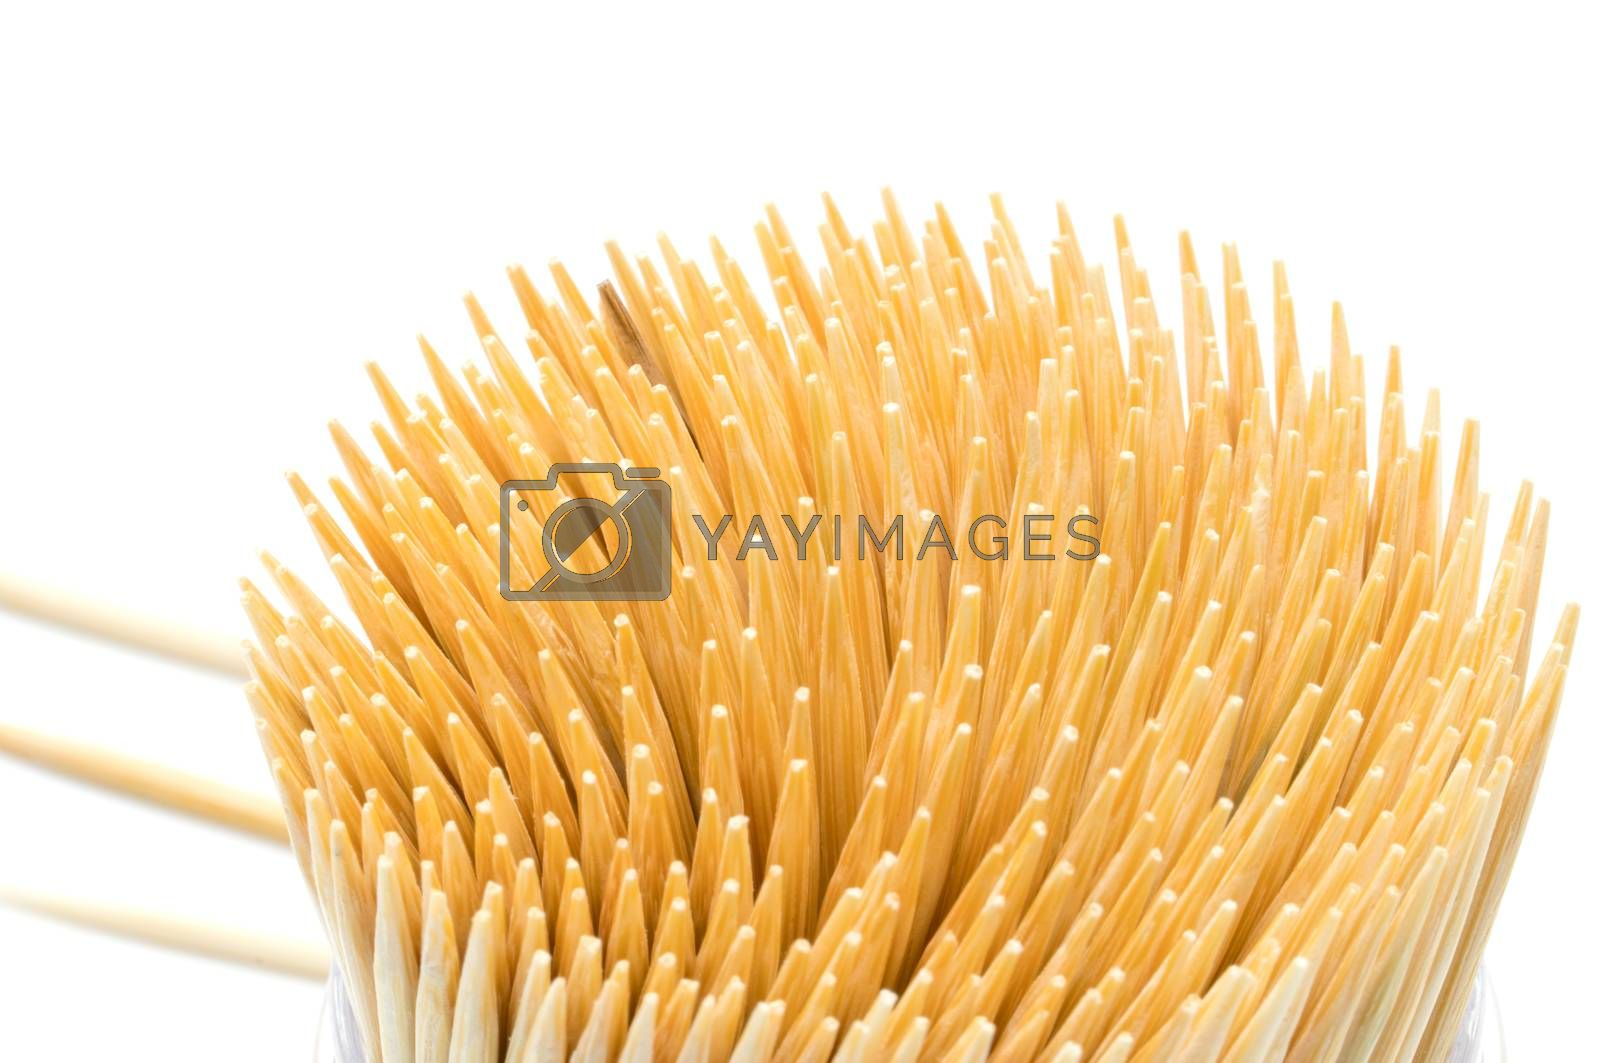 Top view of bamboo toothpicks in round container isolated on white background